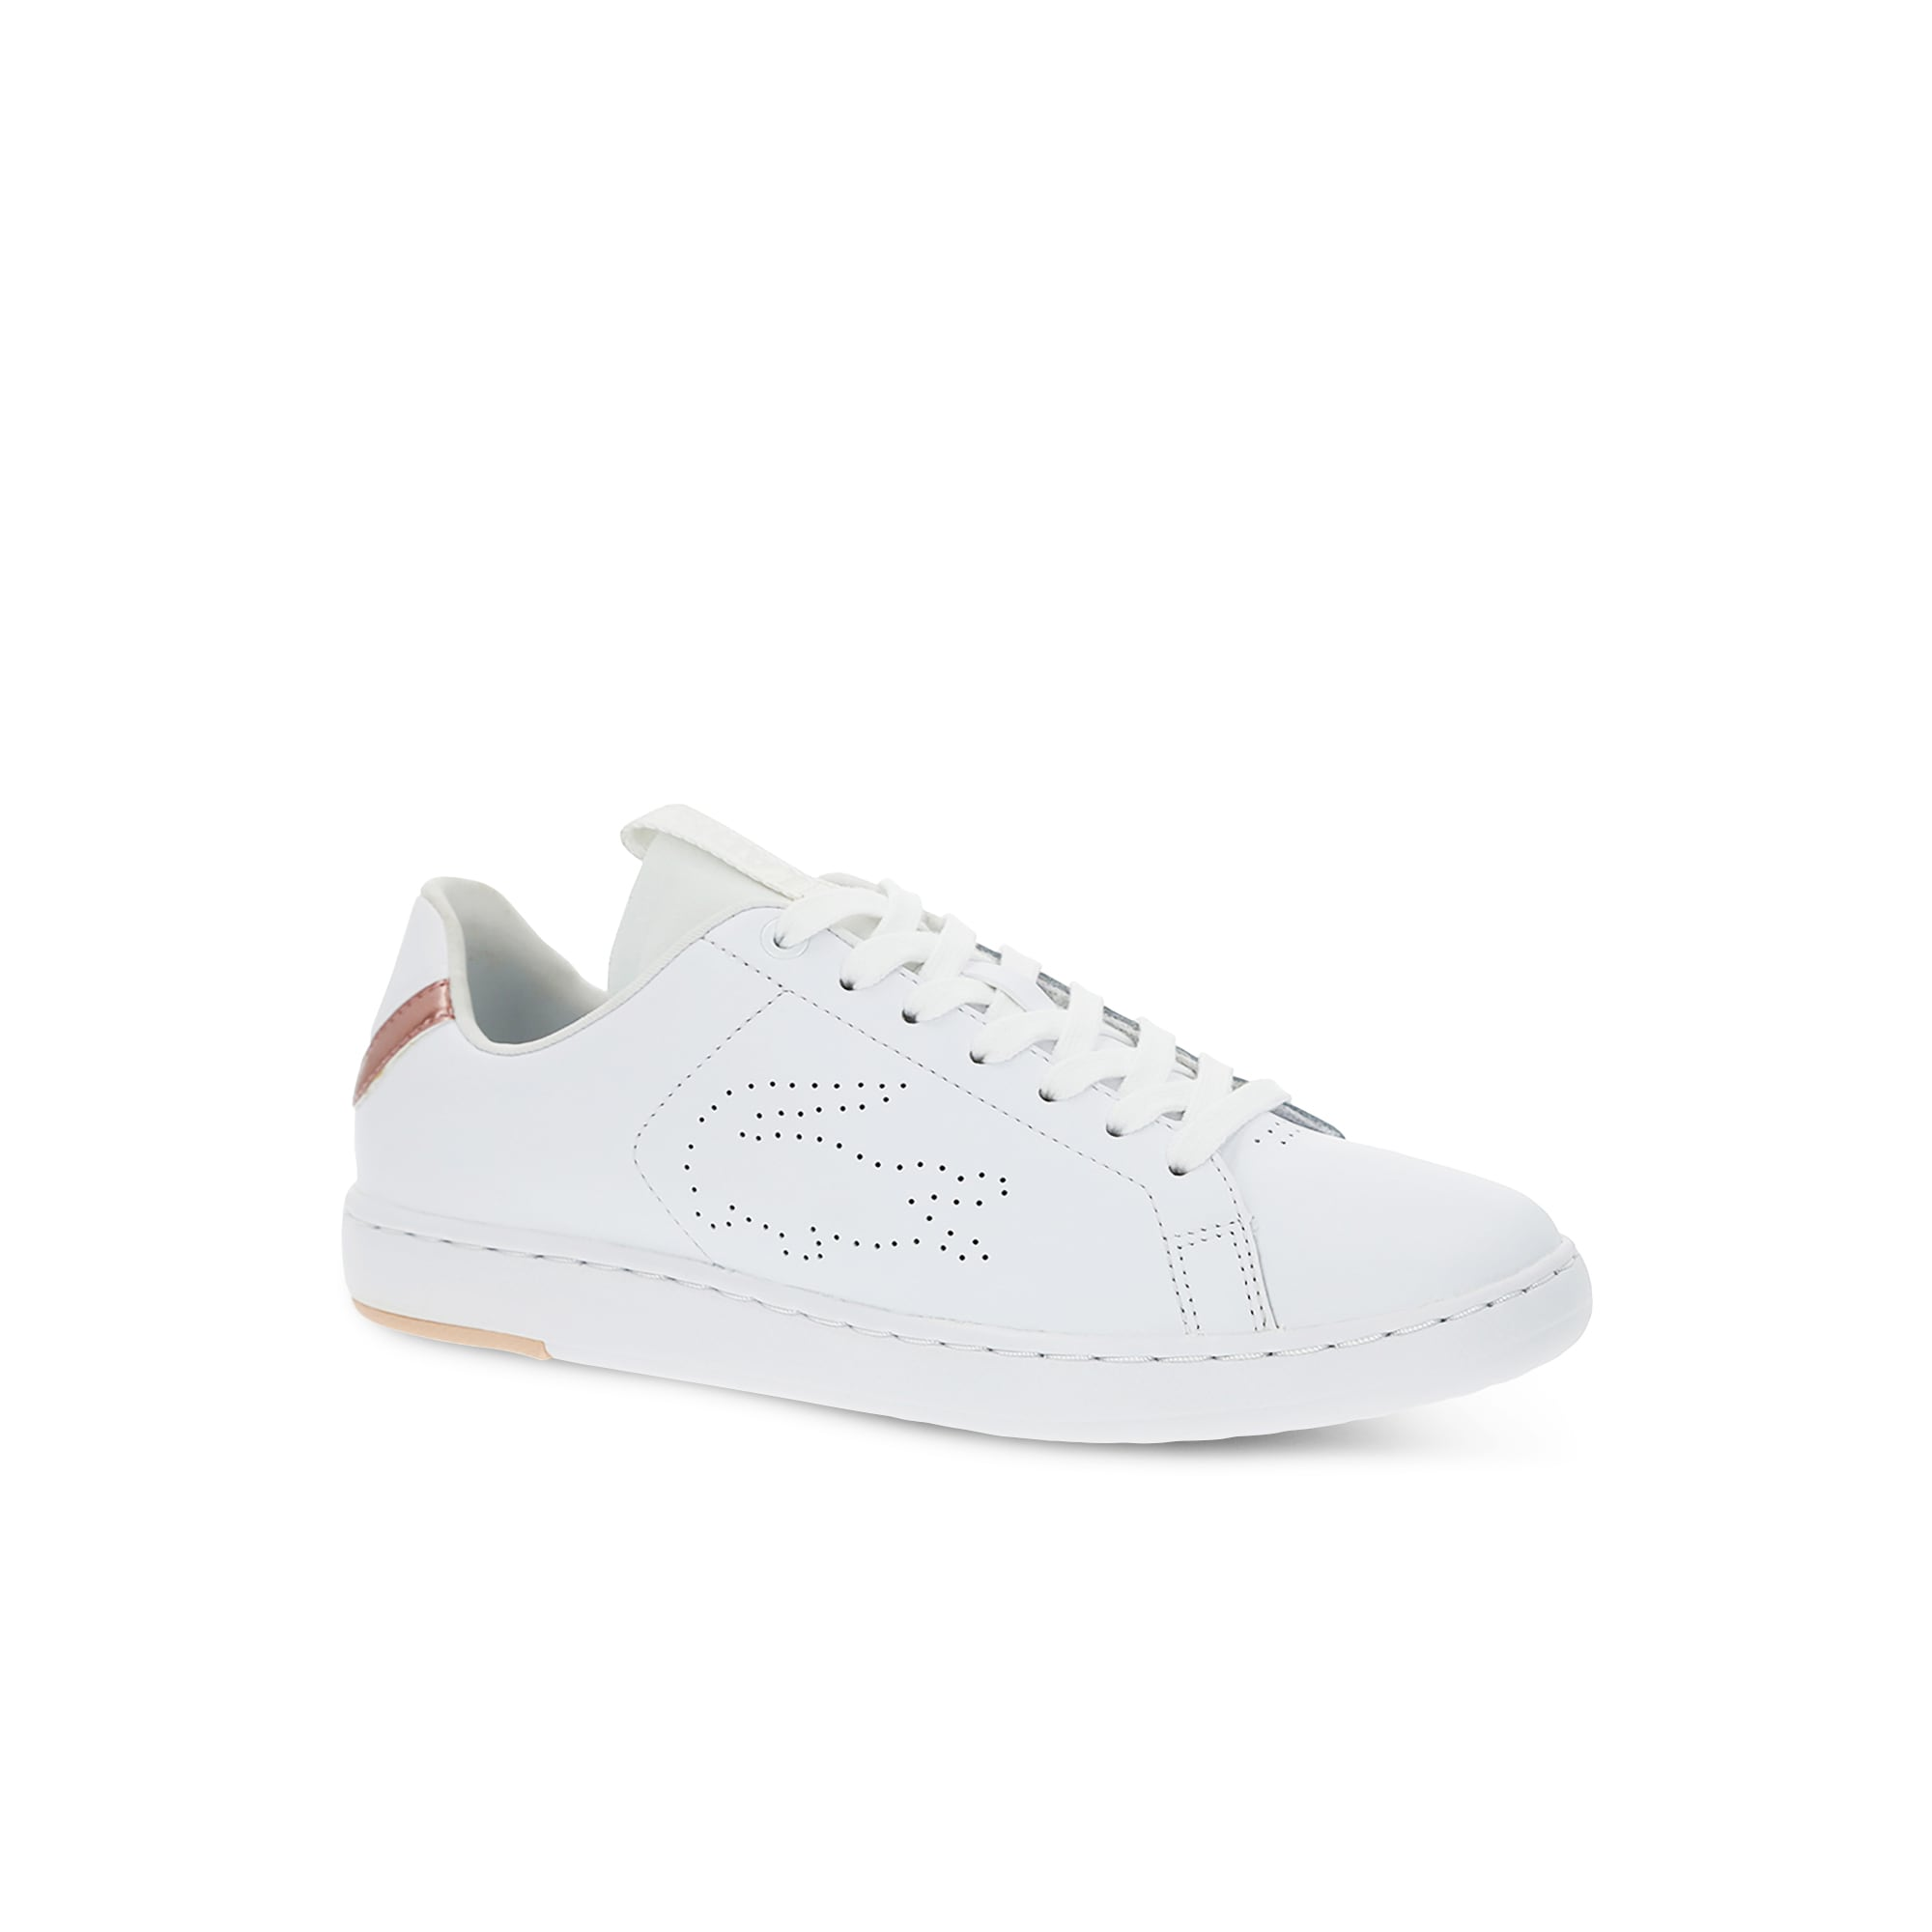 a0018470972 Shoes for Women